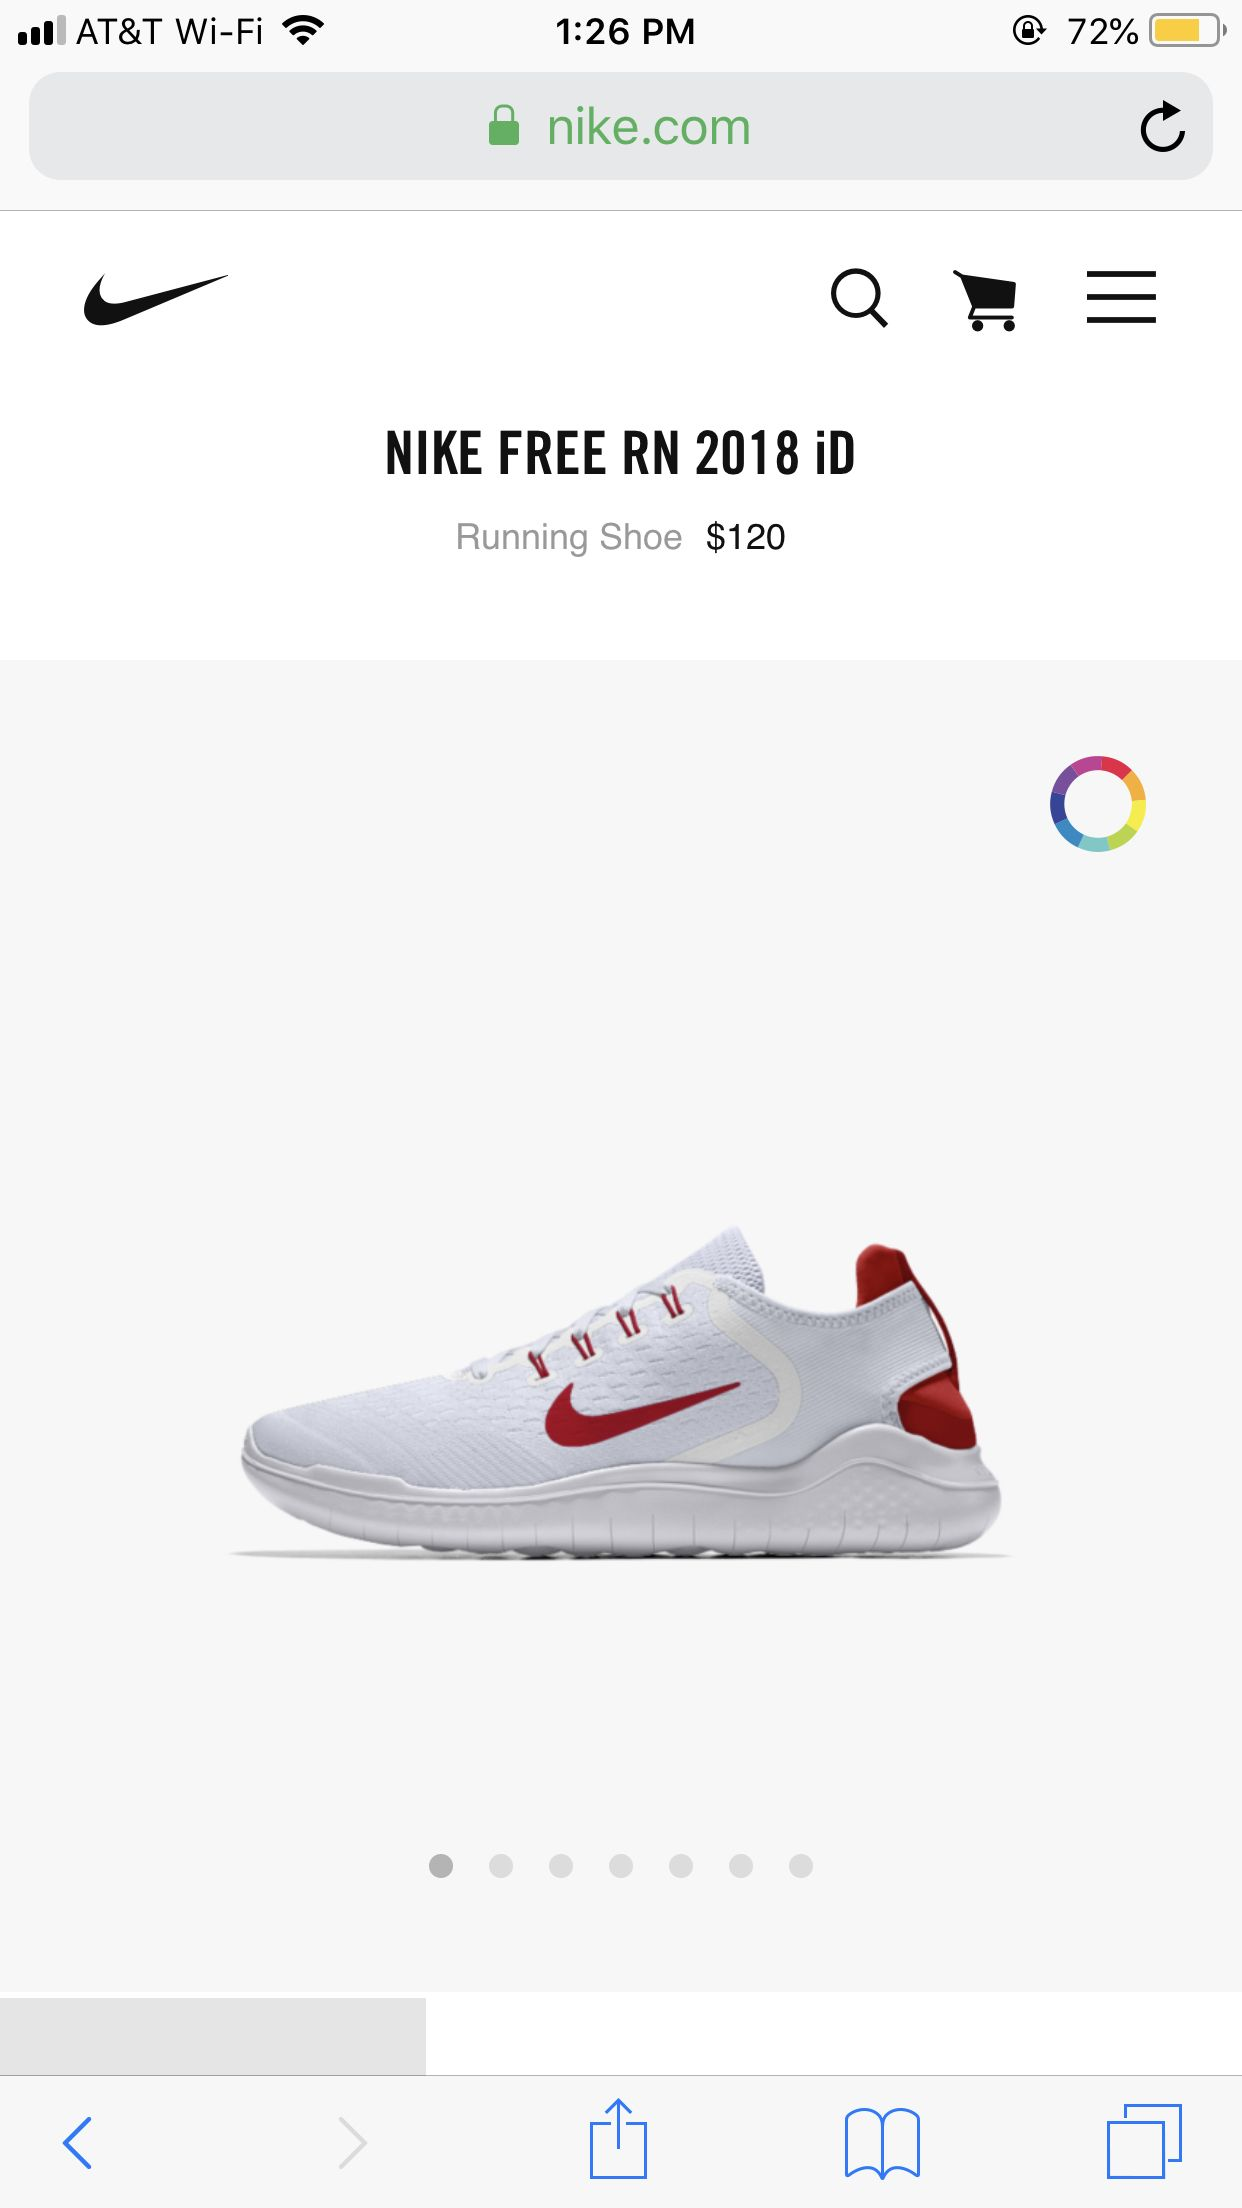 cheaper 2d545 c0376 Pin by Kaitlyn Legge on Shoes   Shoes, Nike, Free